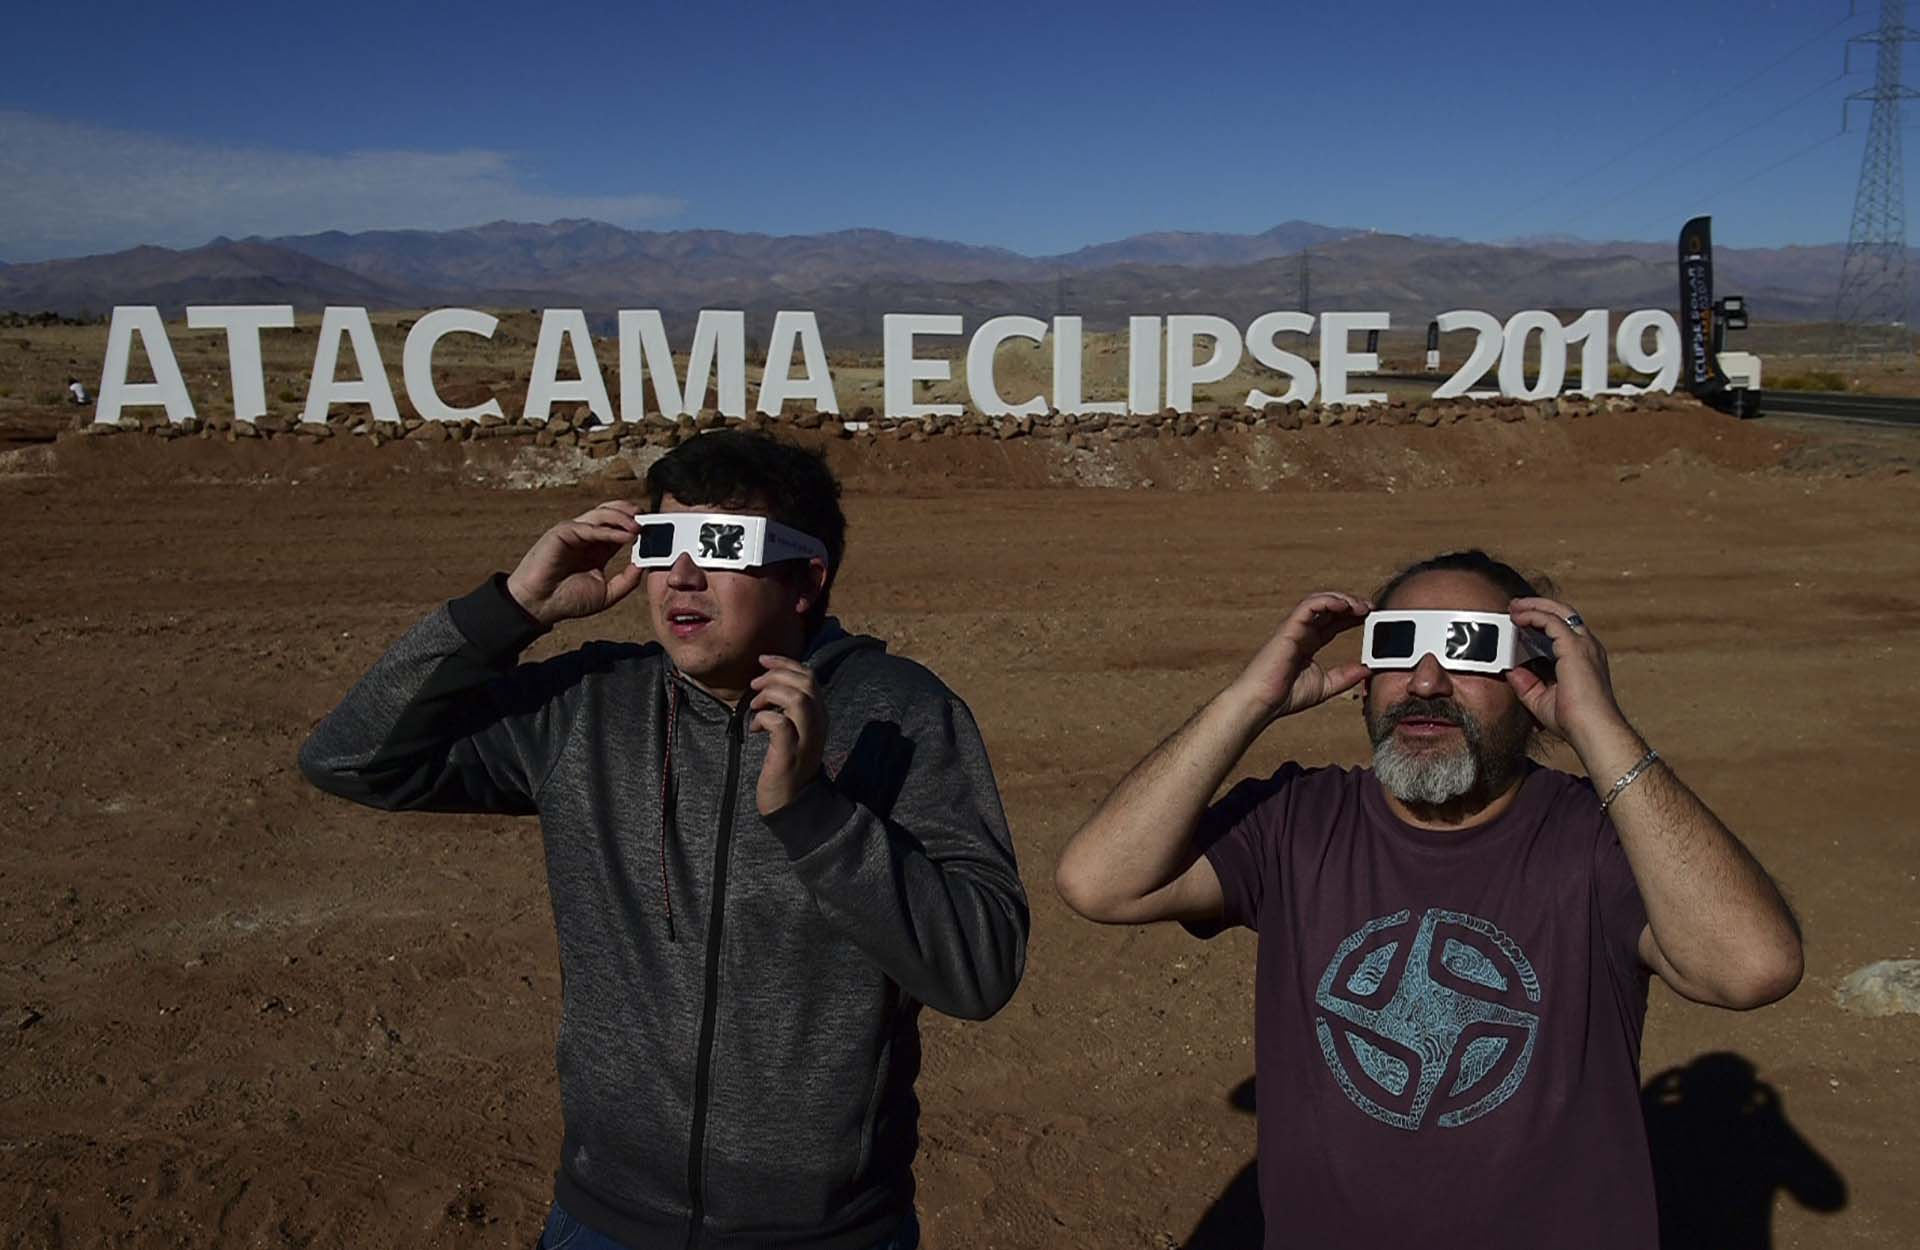 Vallenar, en el desierto de Atacama (Photo by MARTIN BERNETTI / AFP)